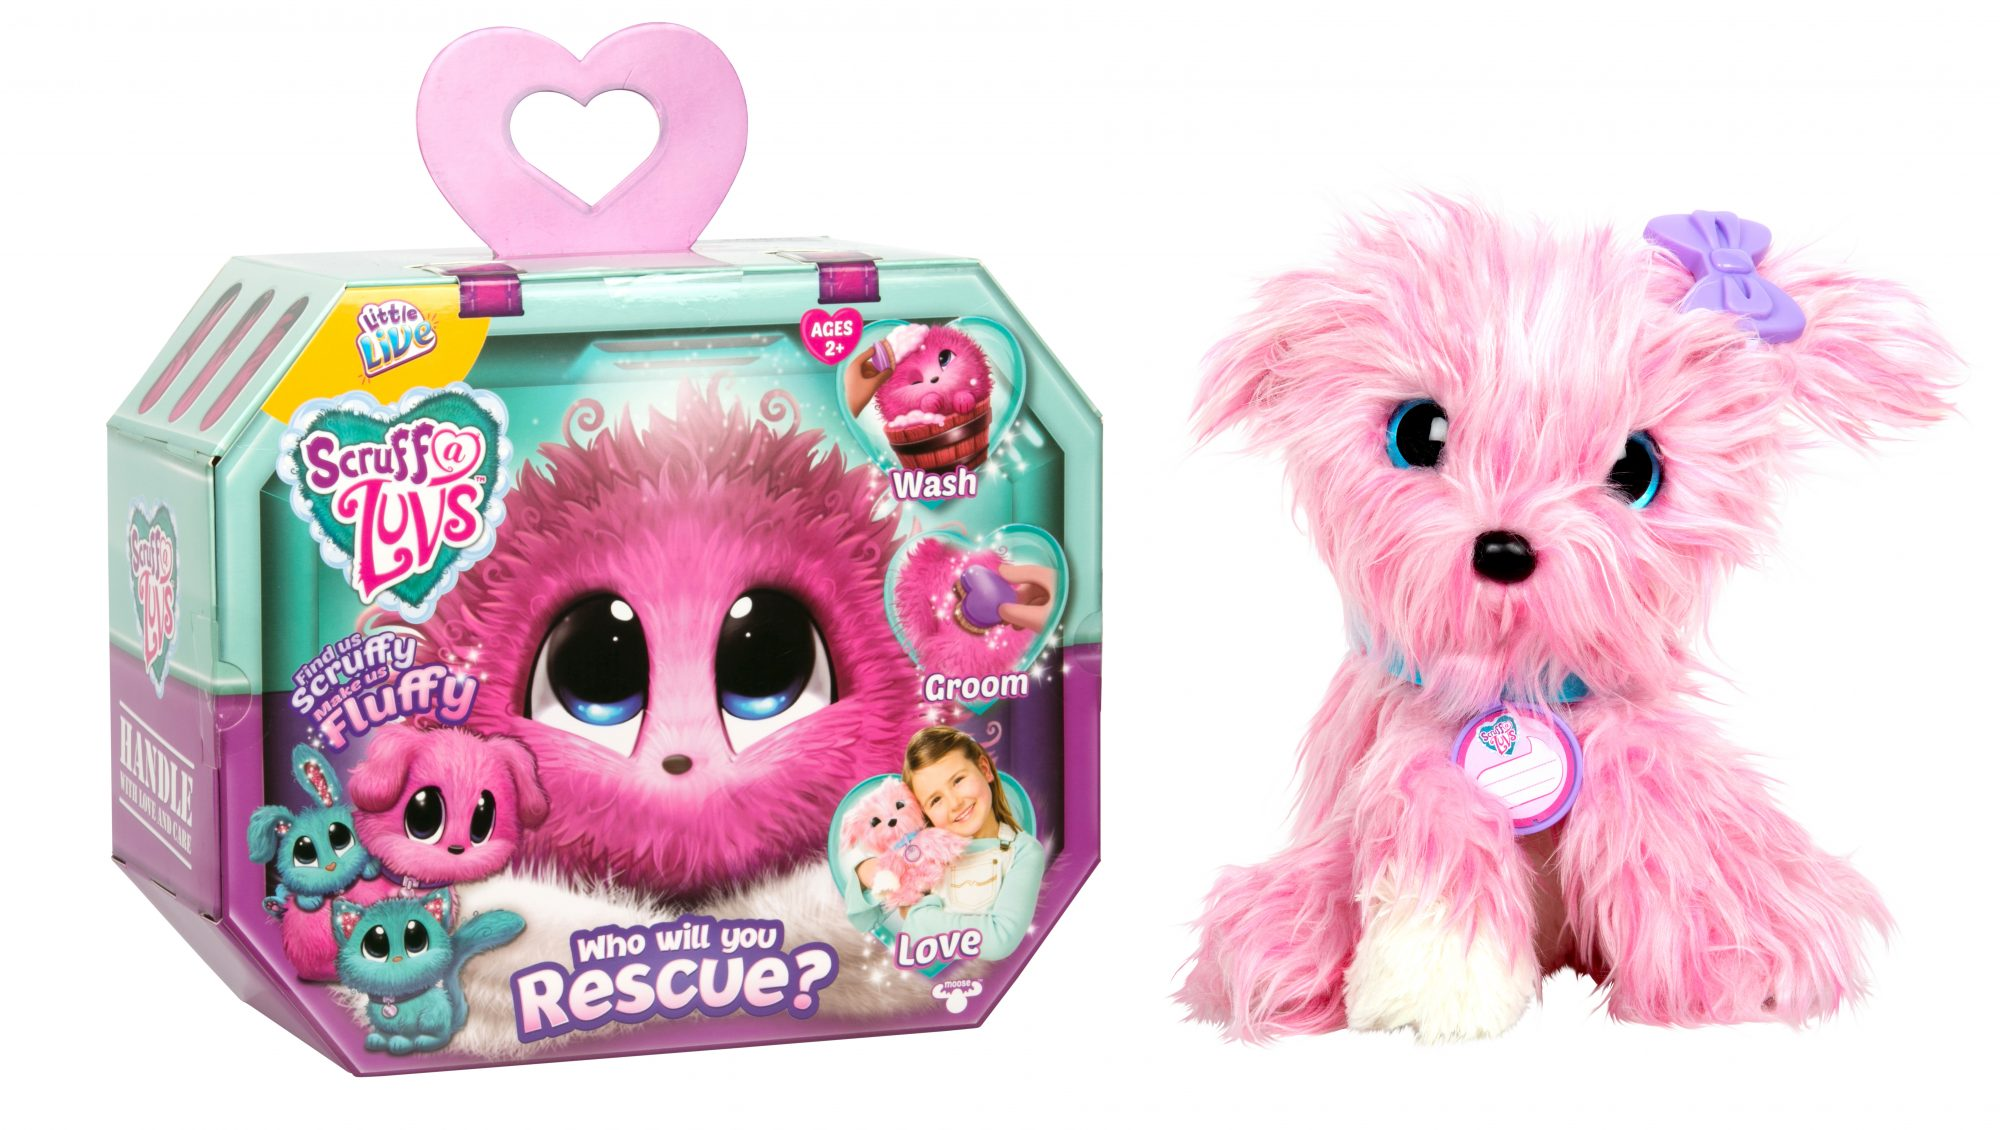 Walmart's Hot Toy List Is Here and OMG It's Not Even Labor Day little-live-scruff-a-luvs